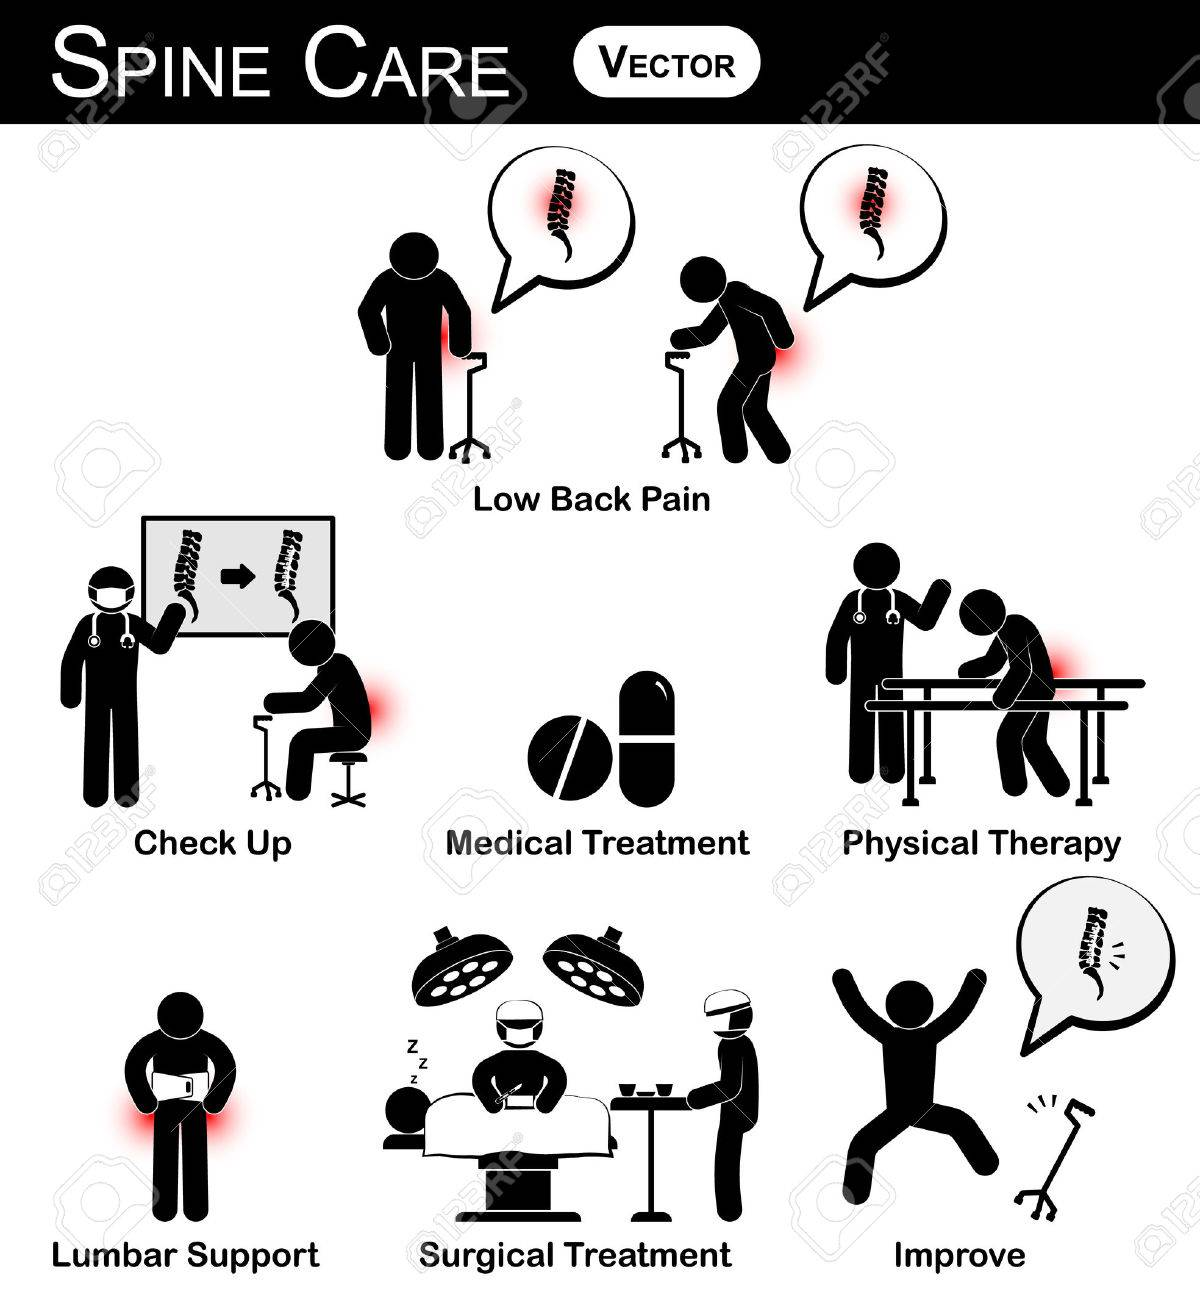 Cartoon physical therapy - Physical Therapy Vector Stickman Diagram Pictogram Infographic Of Spine Care Concept Low Back Pain